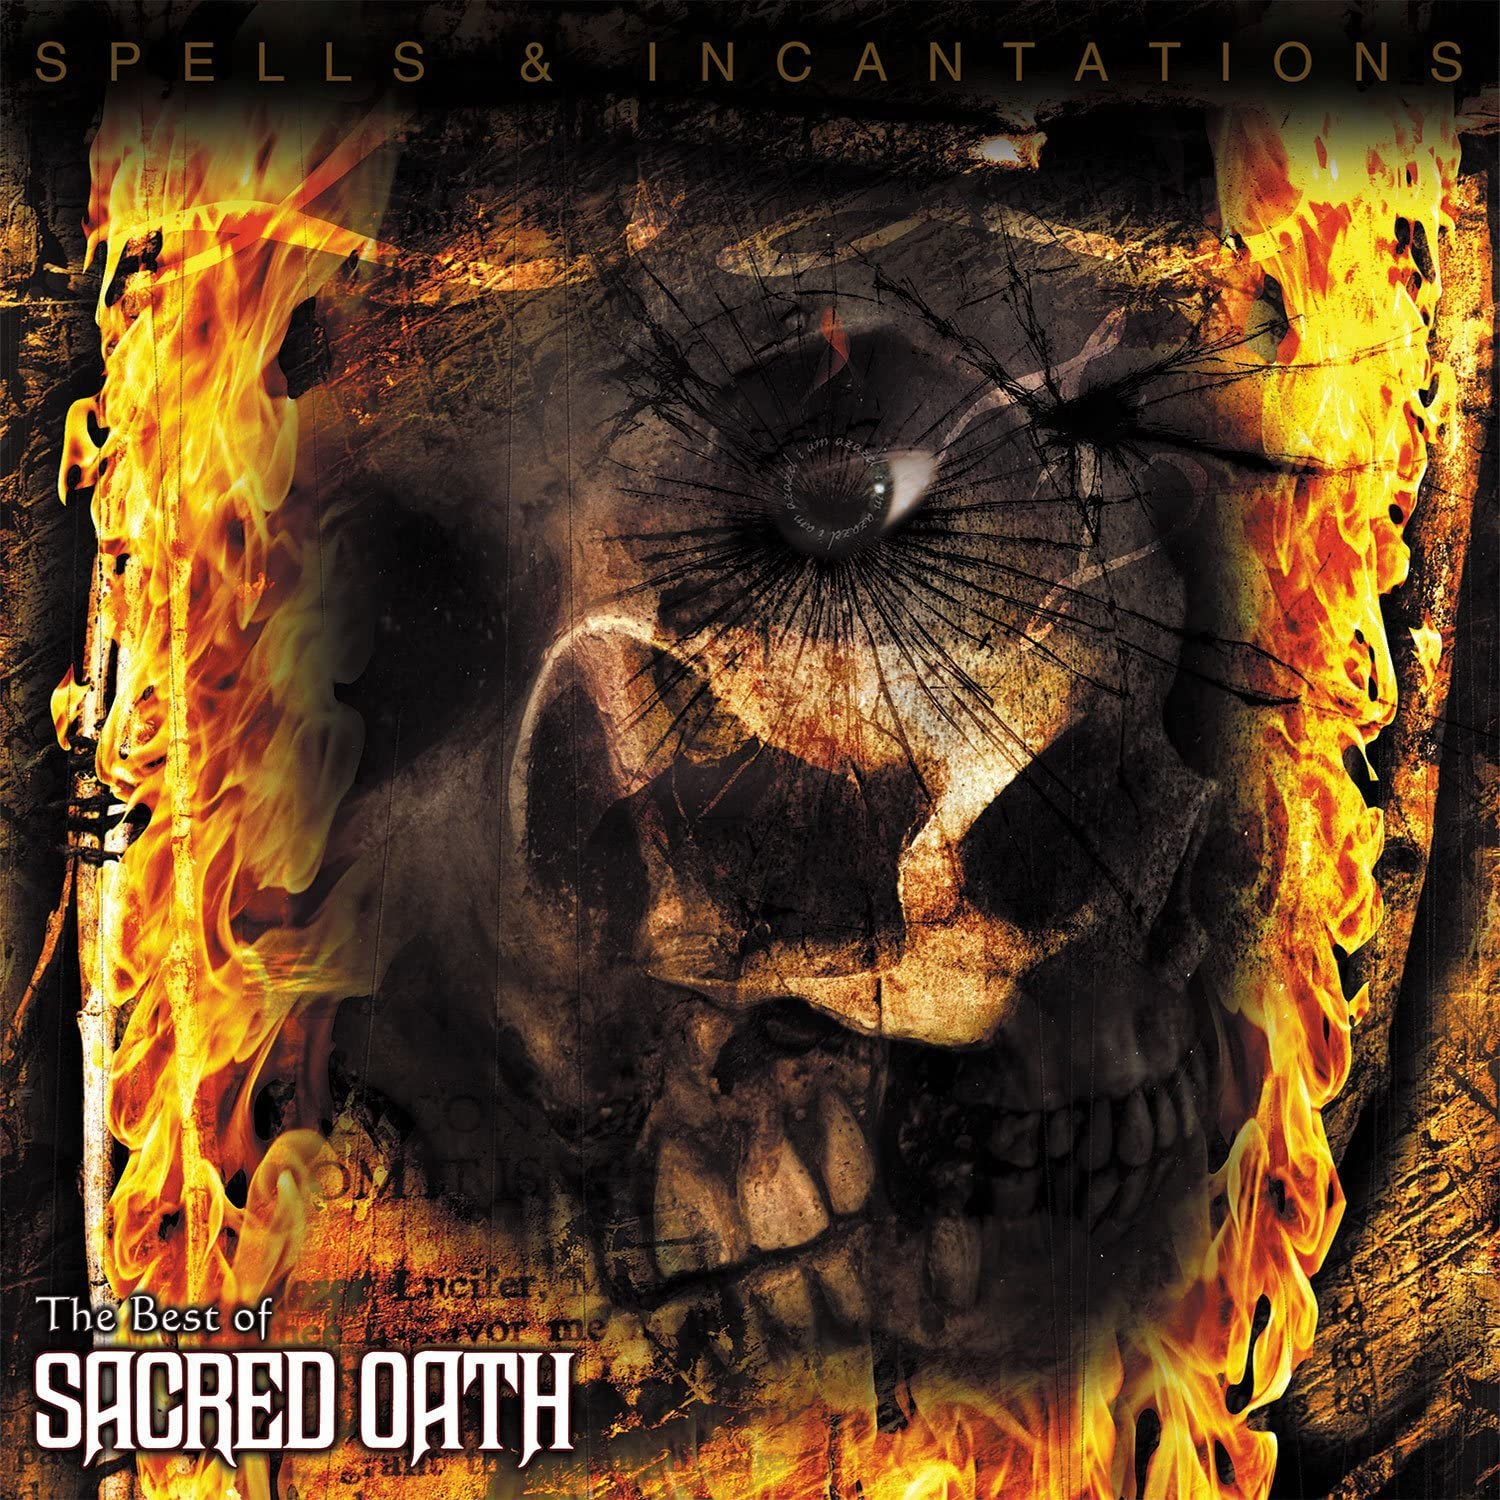 Sacred Oath/Spells & Incantations: The Best of [LP]